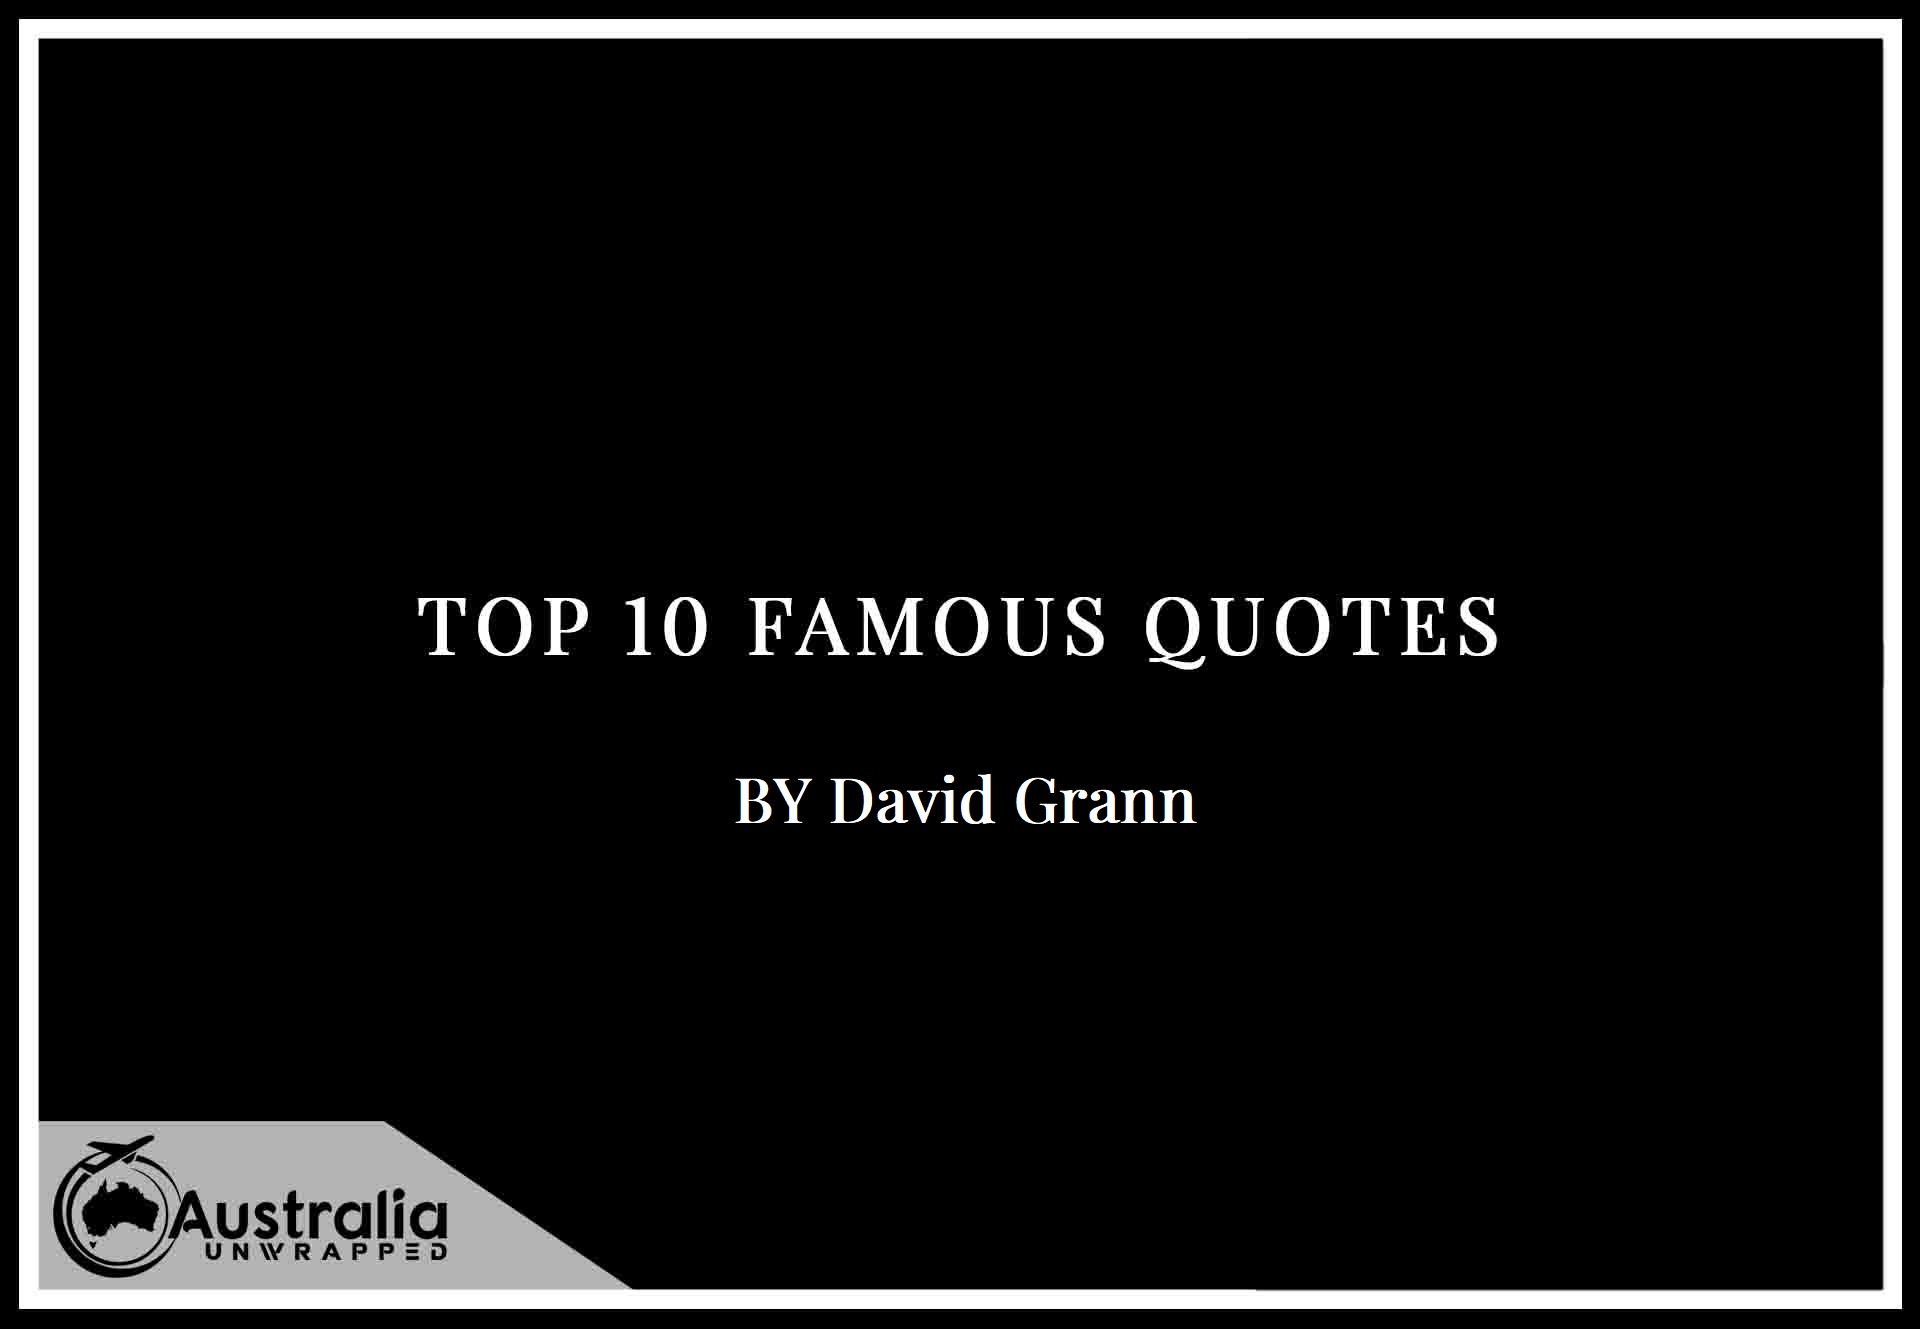 Top 10 Famous Quotes by Author David Grann